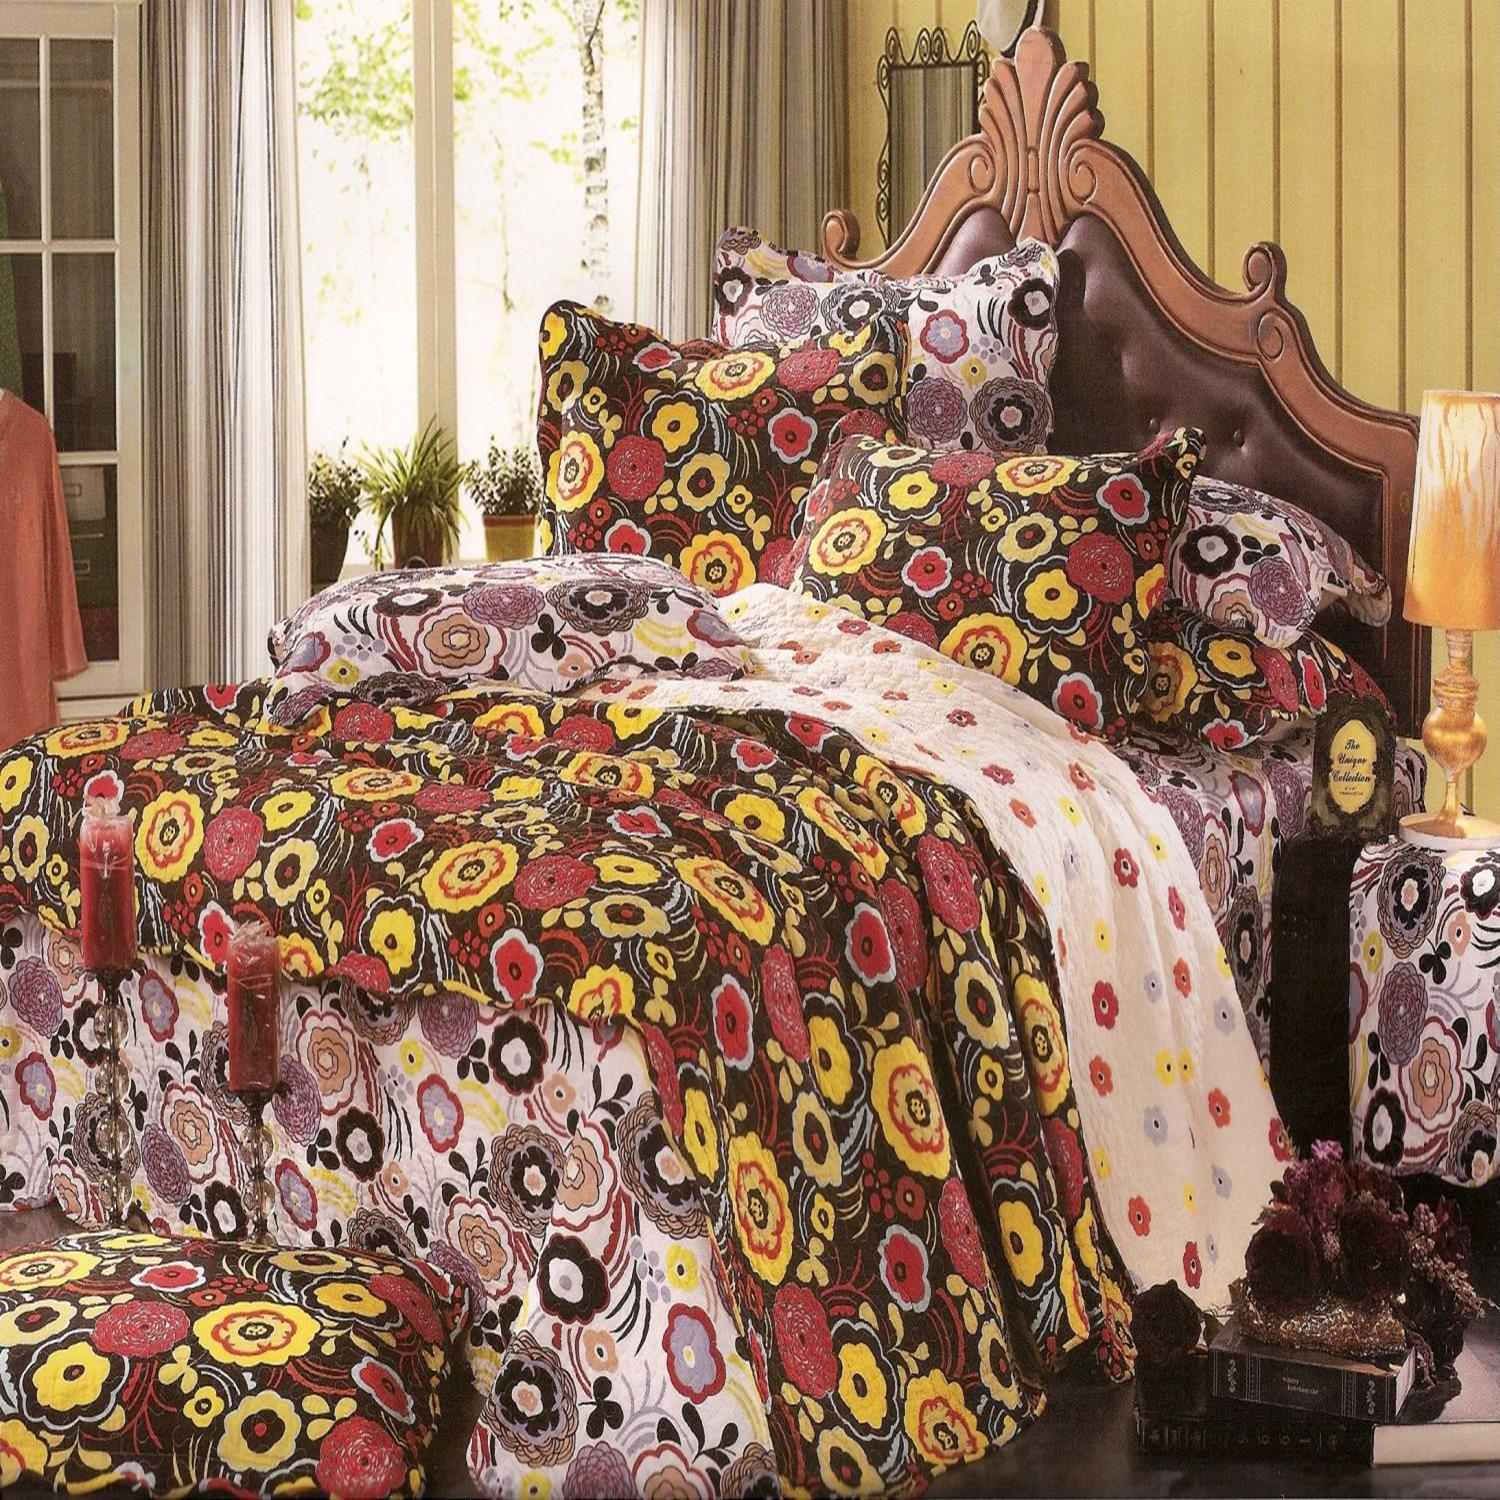 Home Collection Brown Mod Floral 250T Cotton Oversize Queen Quilt & Sham Set at Sears.com